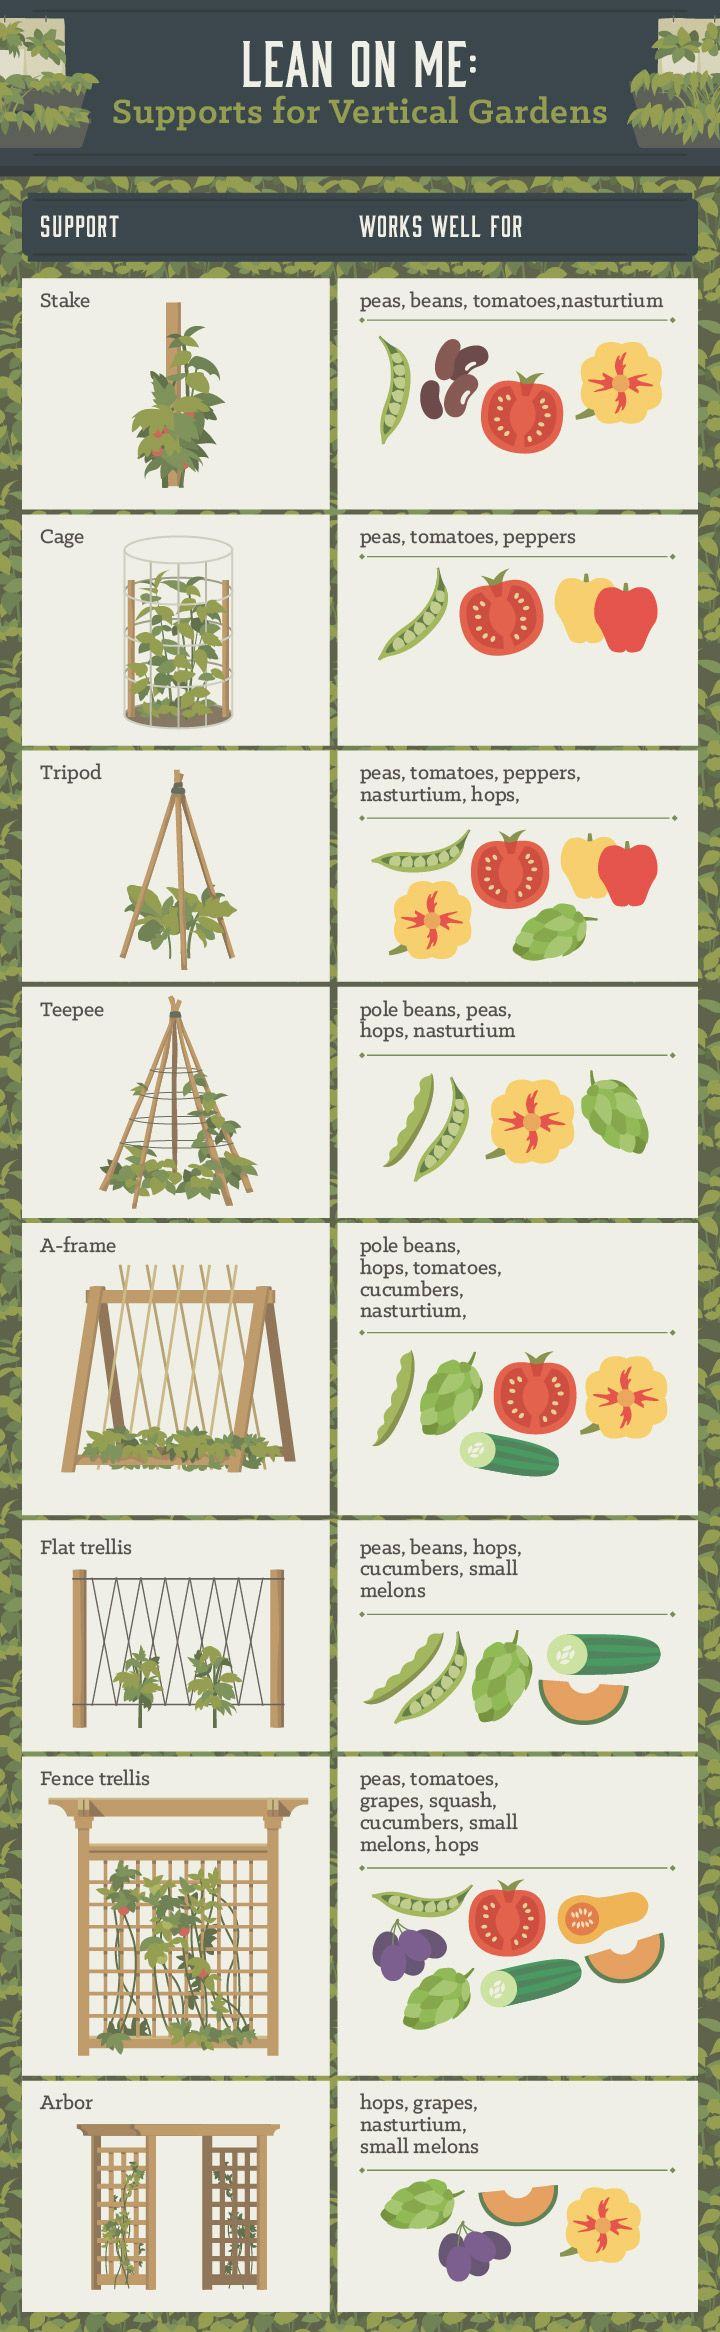 5 Gorgeous Vertical Gardening Beds | Vertical vegetable gardens, Vertical vegetable garden, Micro garden